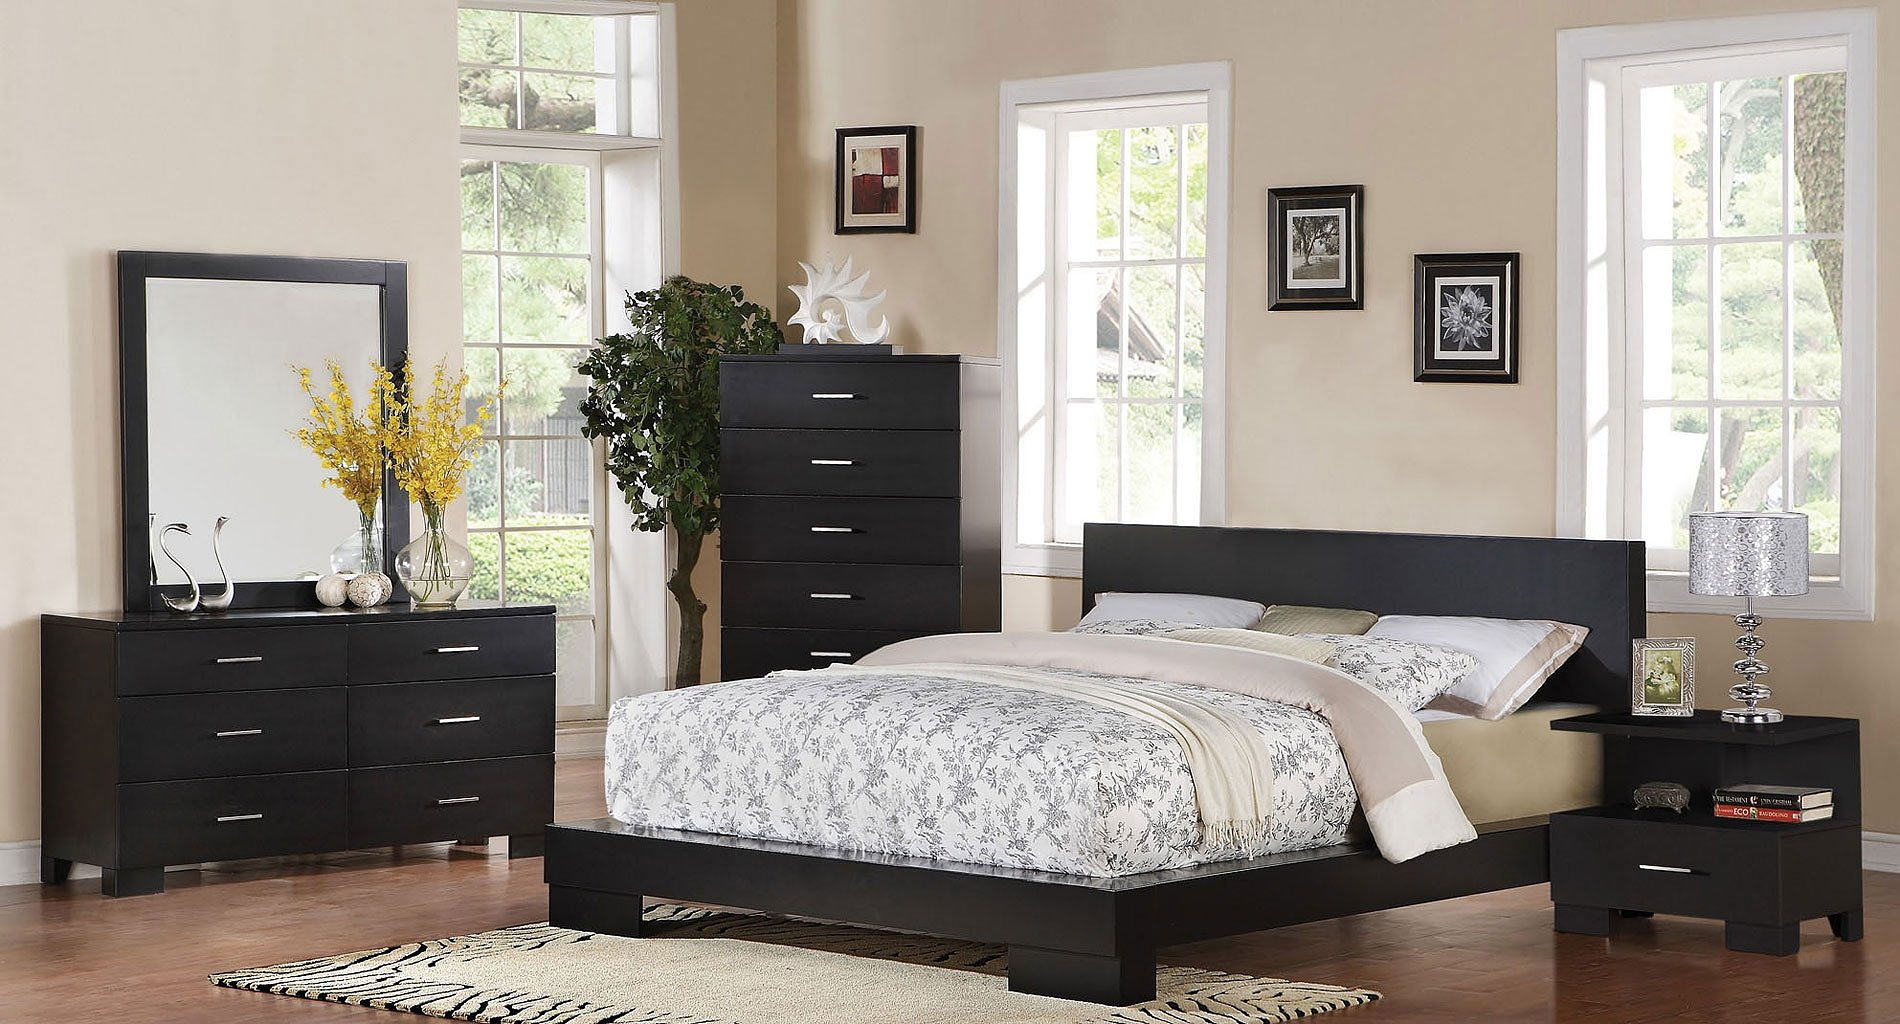 London Low Profile Bedroom Set (Black)